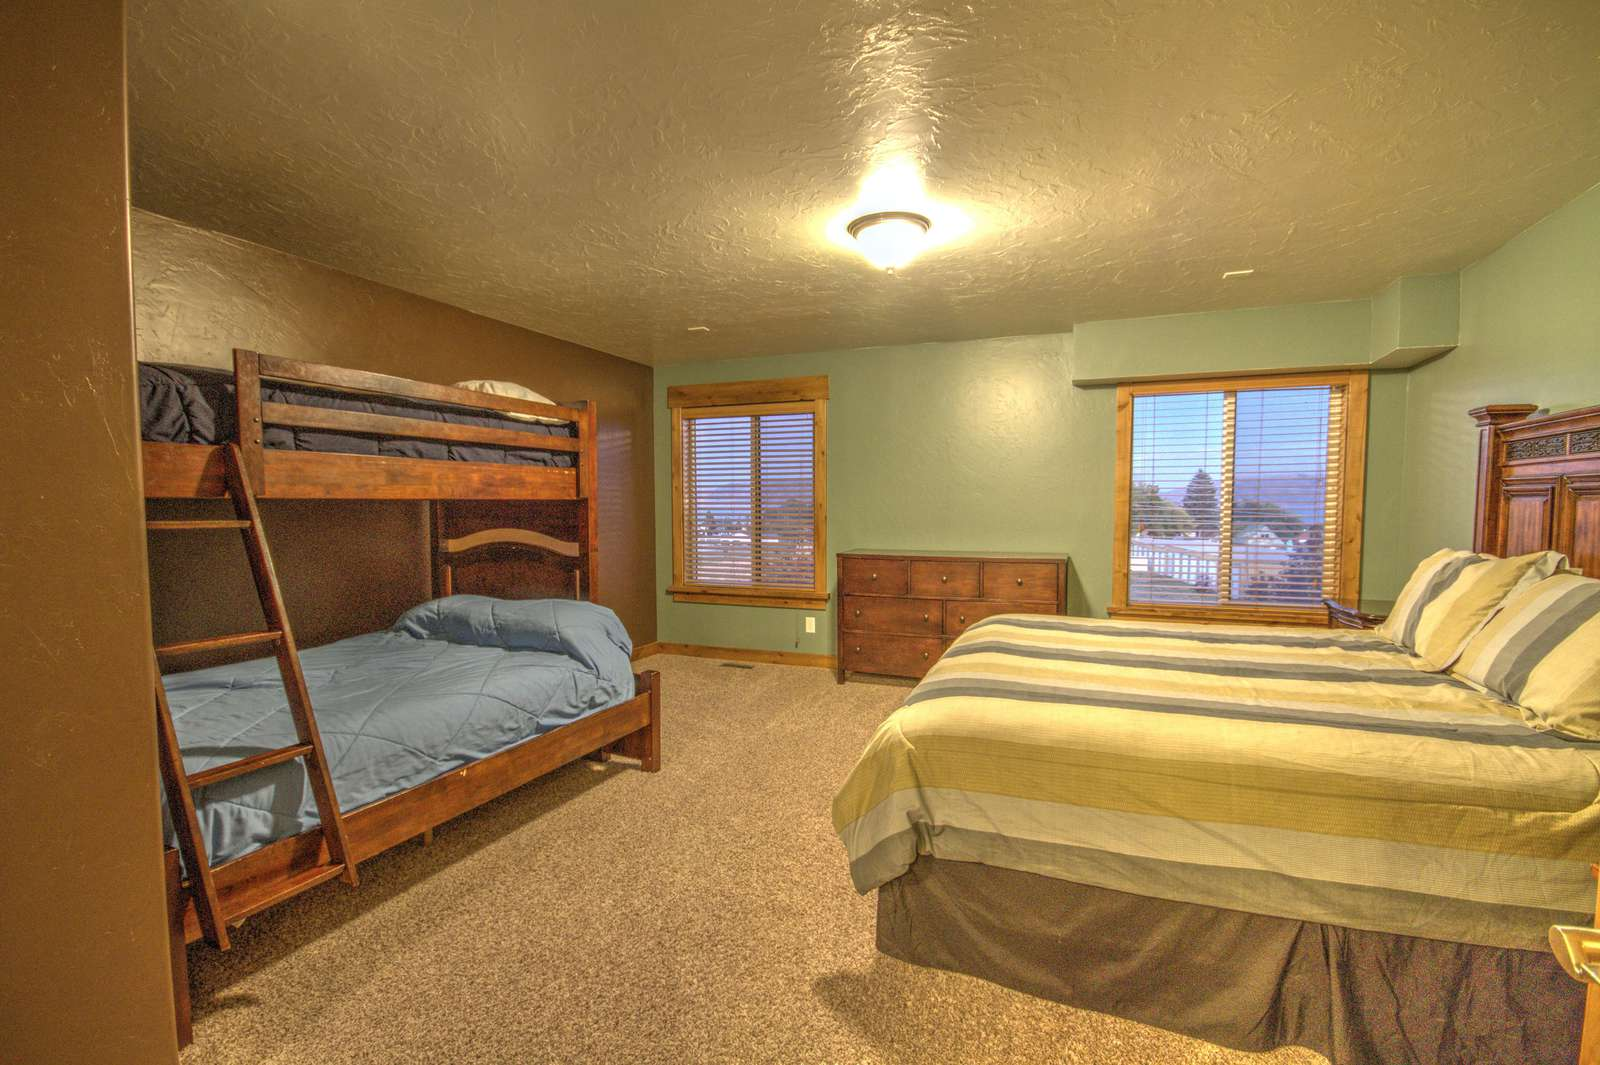 Upstairs bedroom with view of the lake